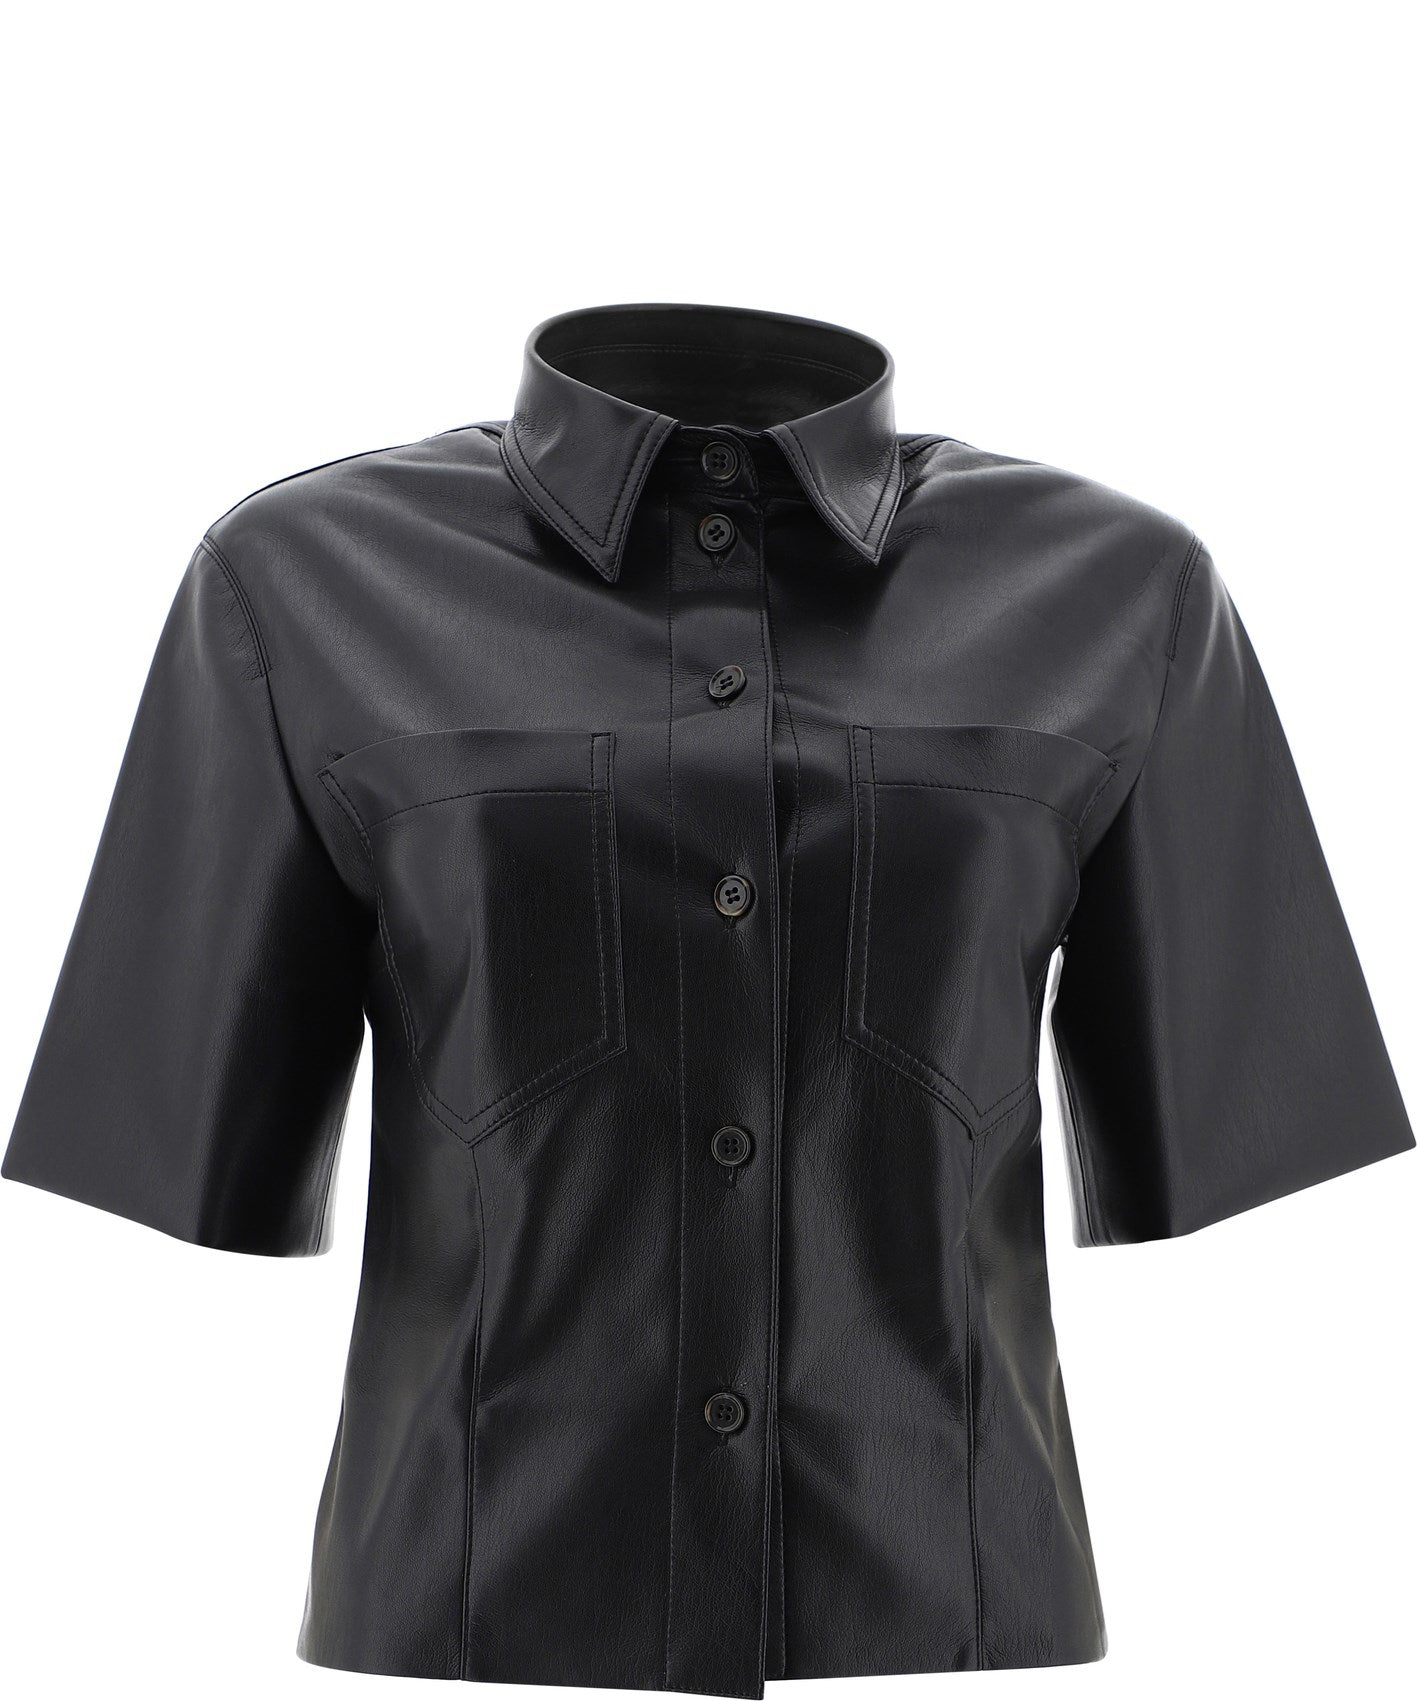 NANUSHKA NANUSHKA SABINE VEGAN LEATHER SHIRT